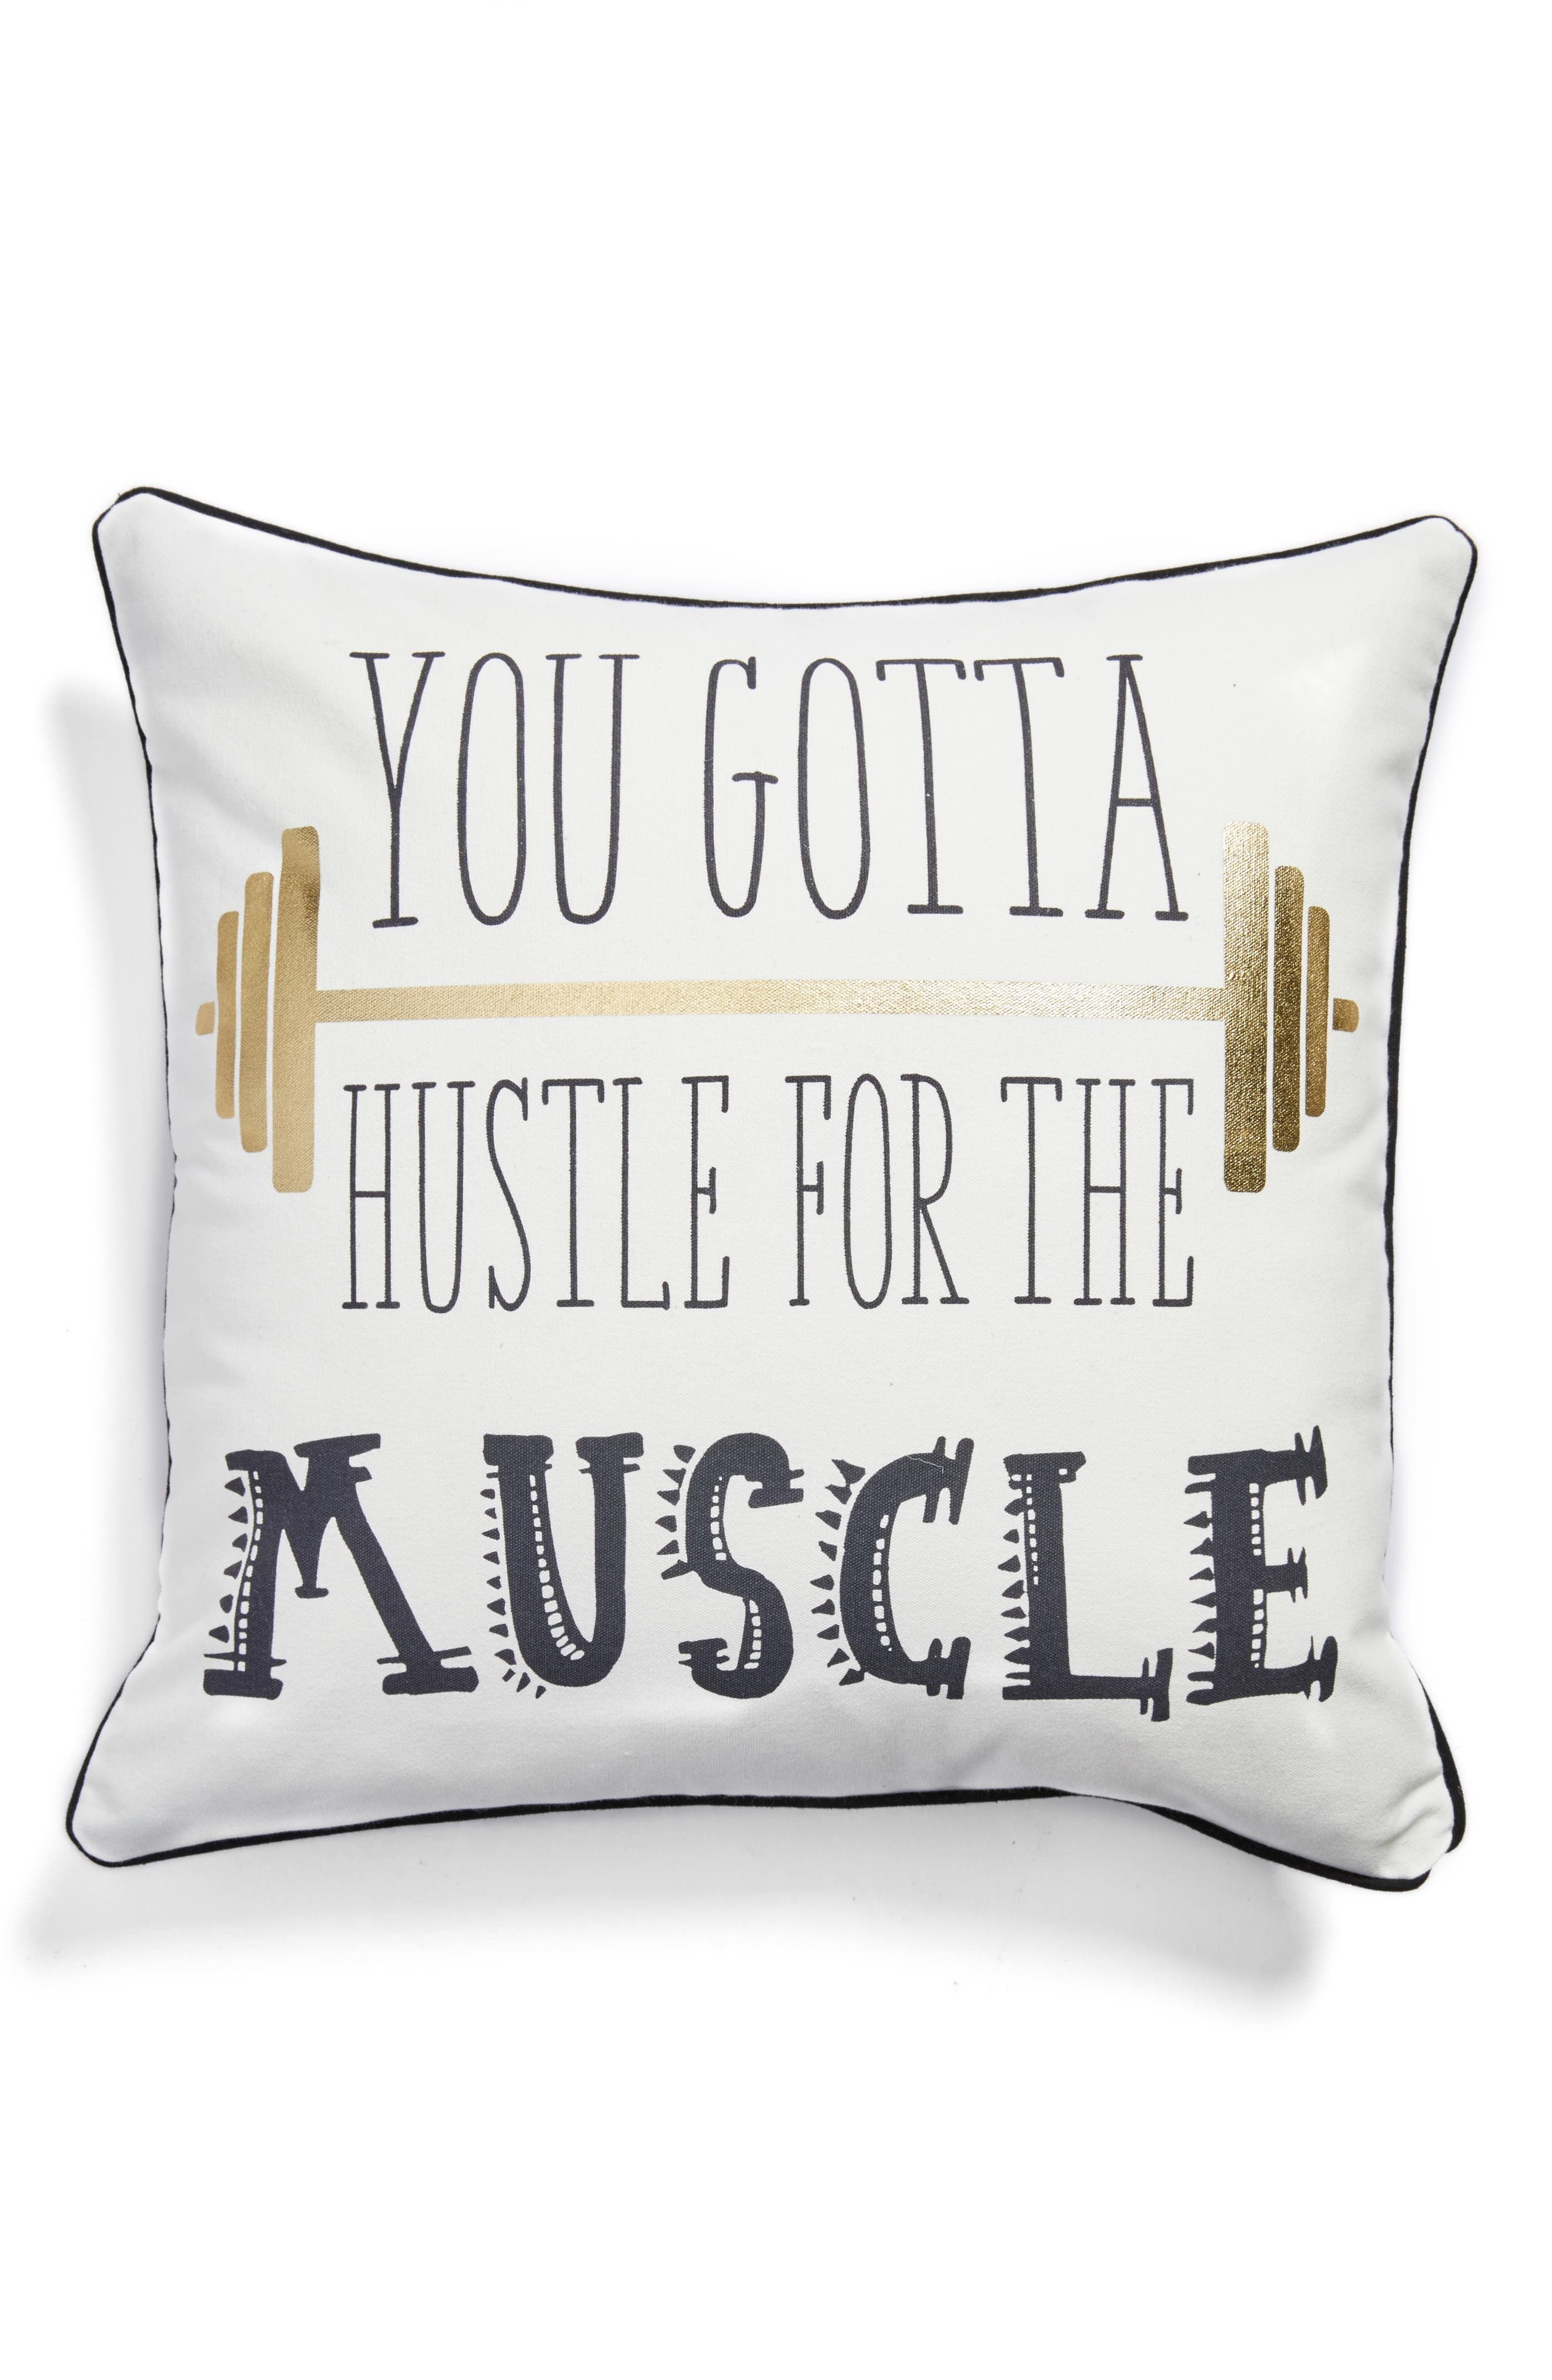 Hustle for the Muscle Pillow,                             Main thumbnail 1, color,